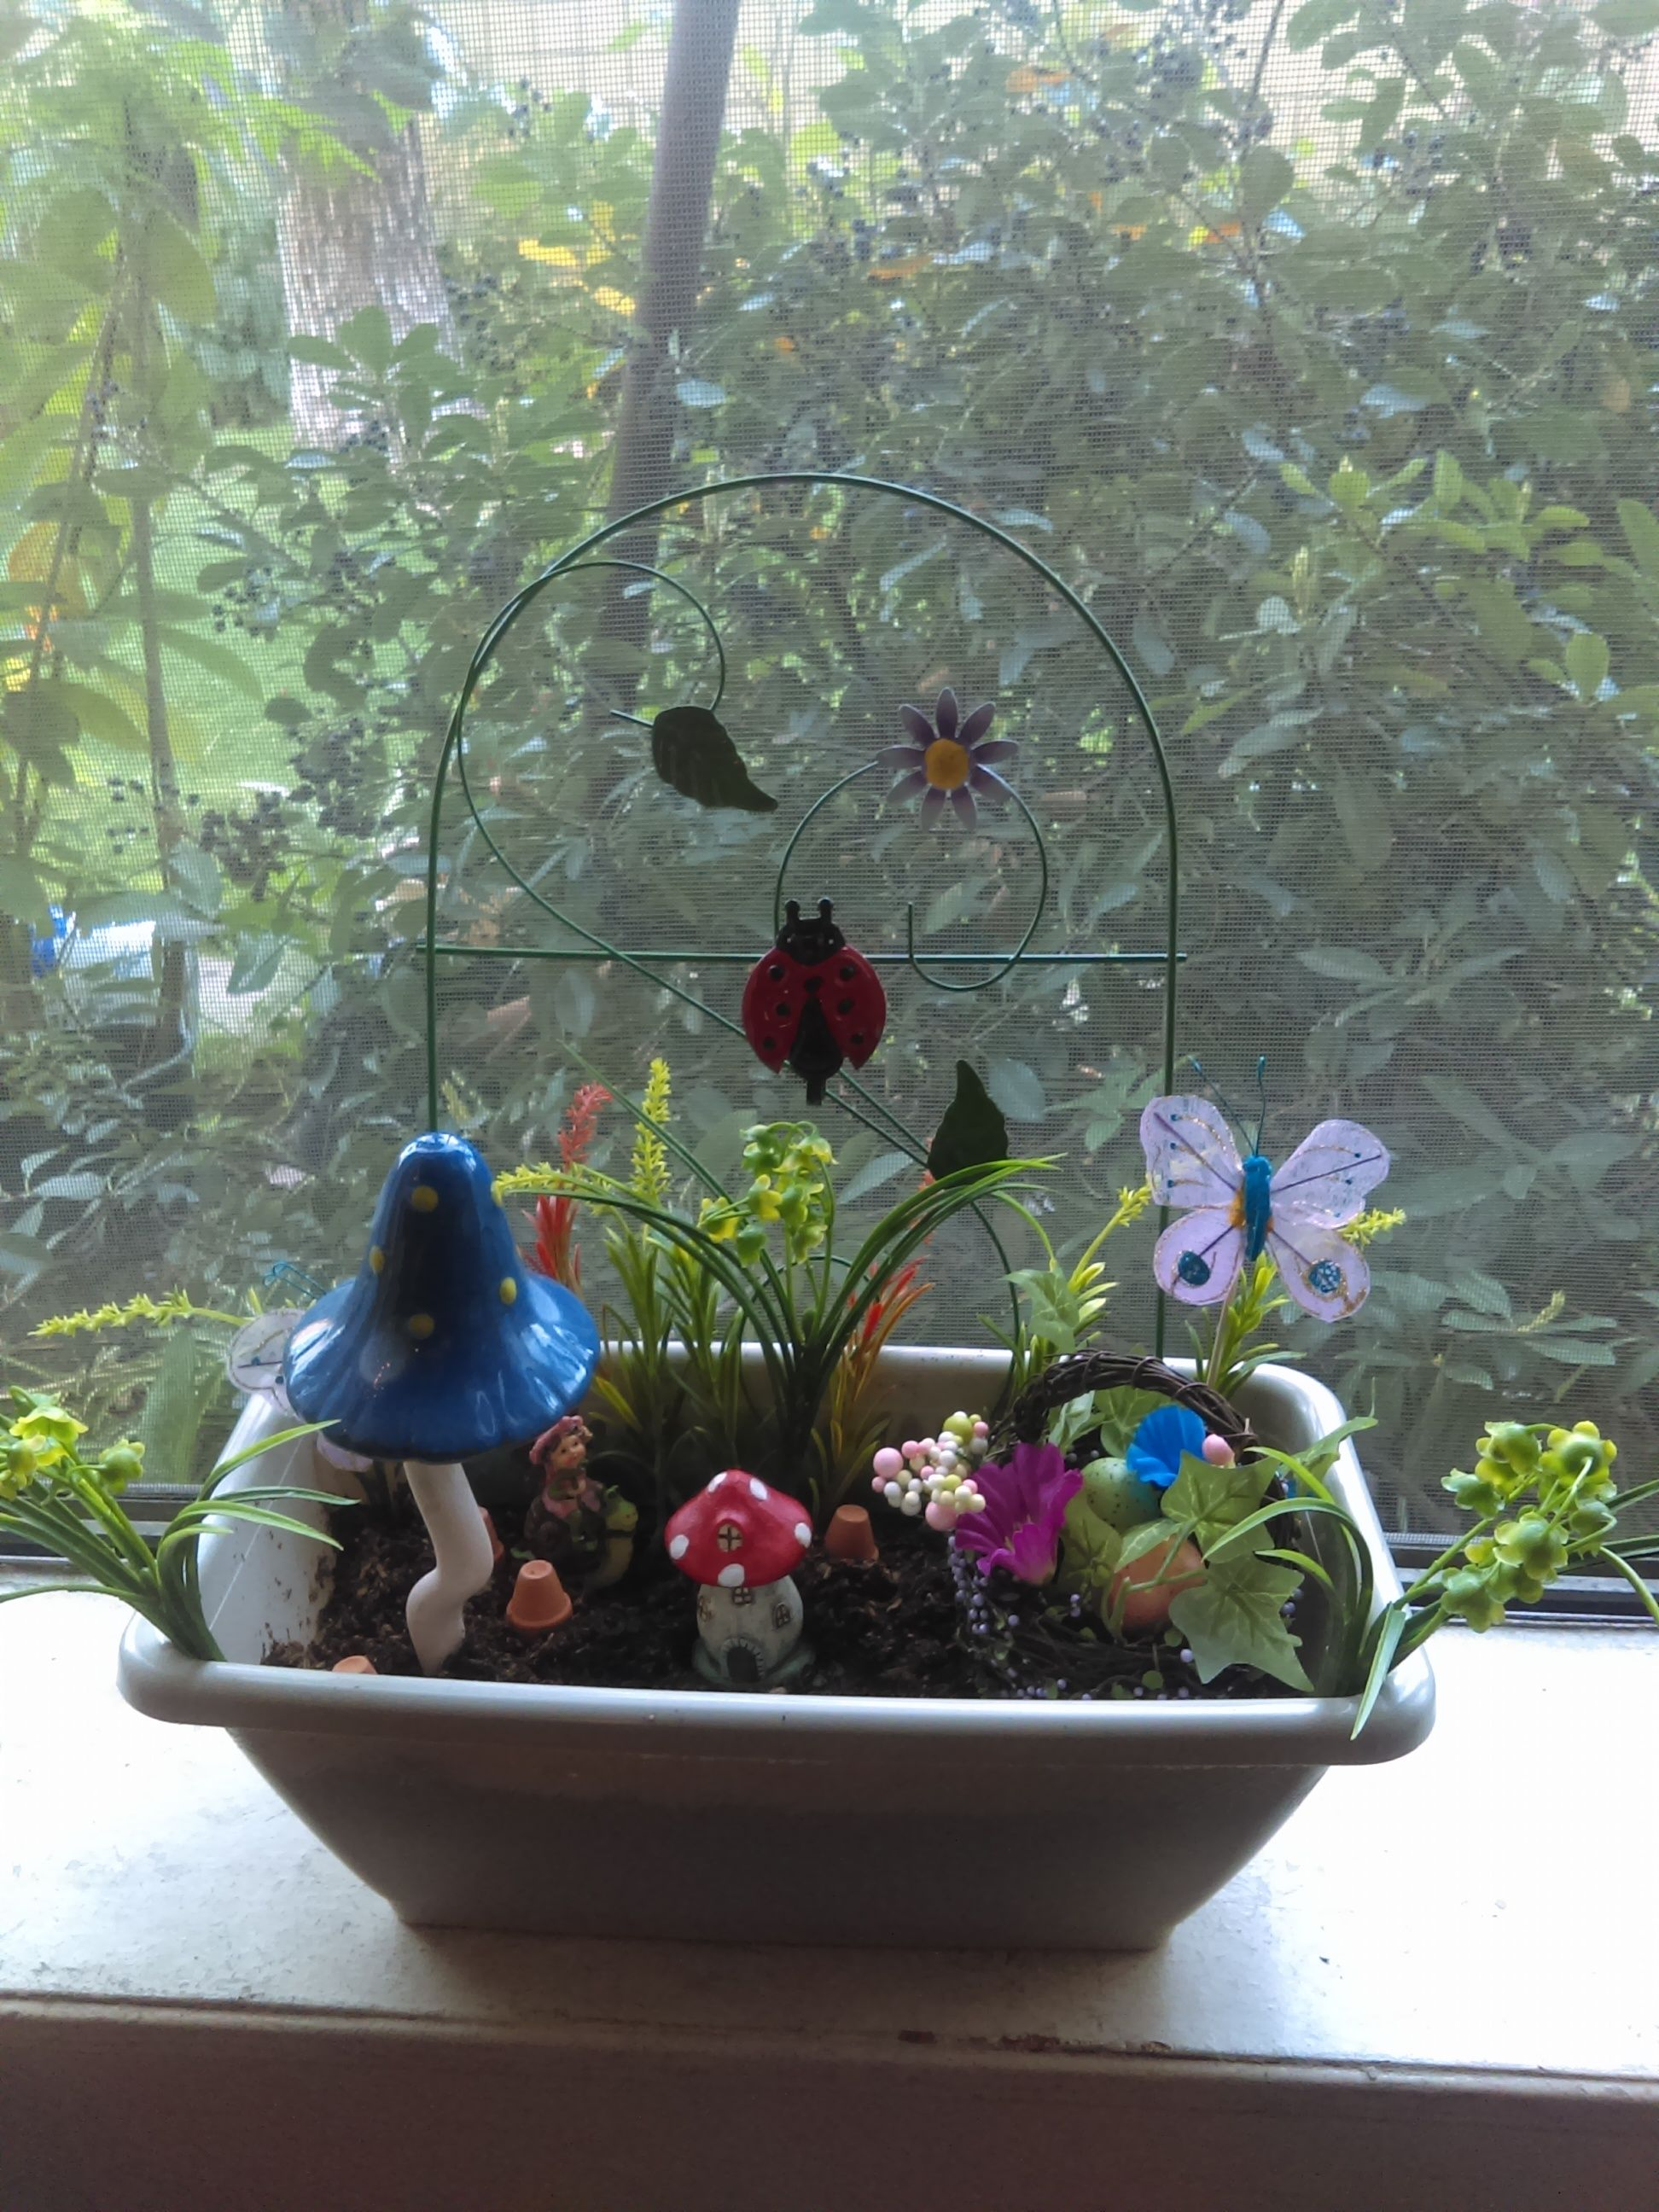 My Finished Mini Fairy Garden. All items from Dollar tree